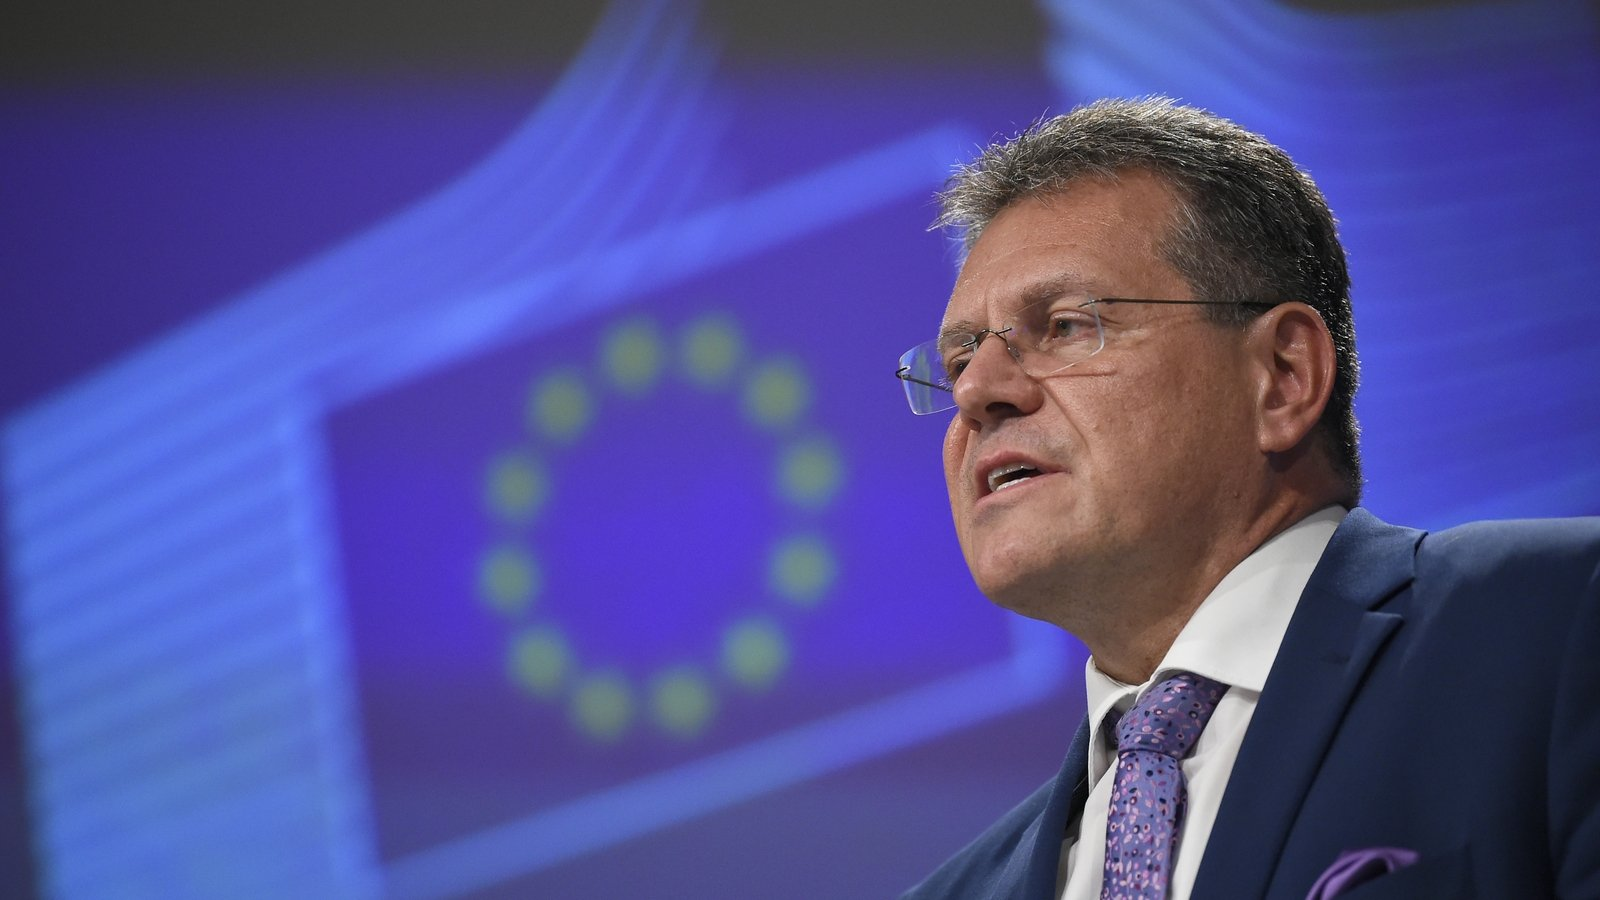 Sefcovic briefing due on apt action in opposition to UK